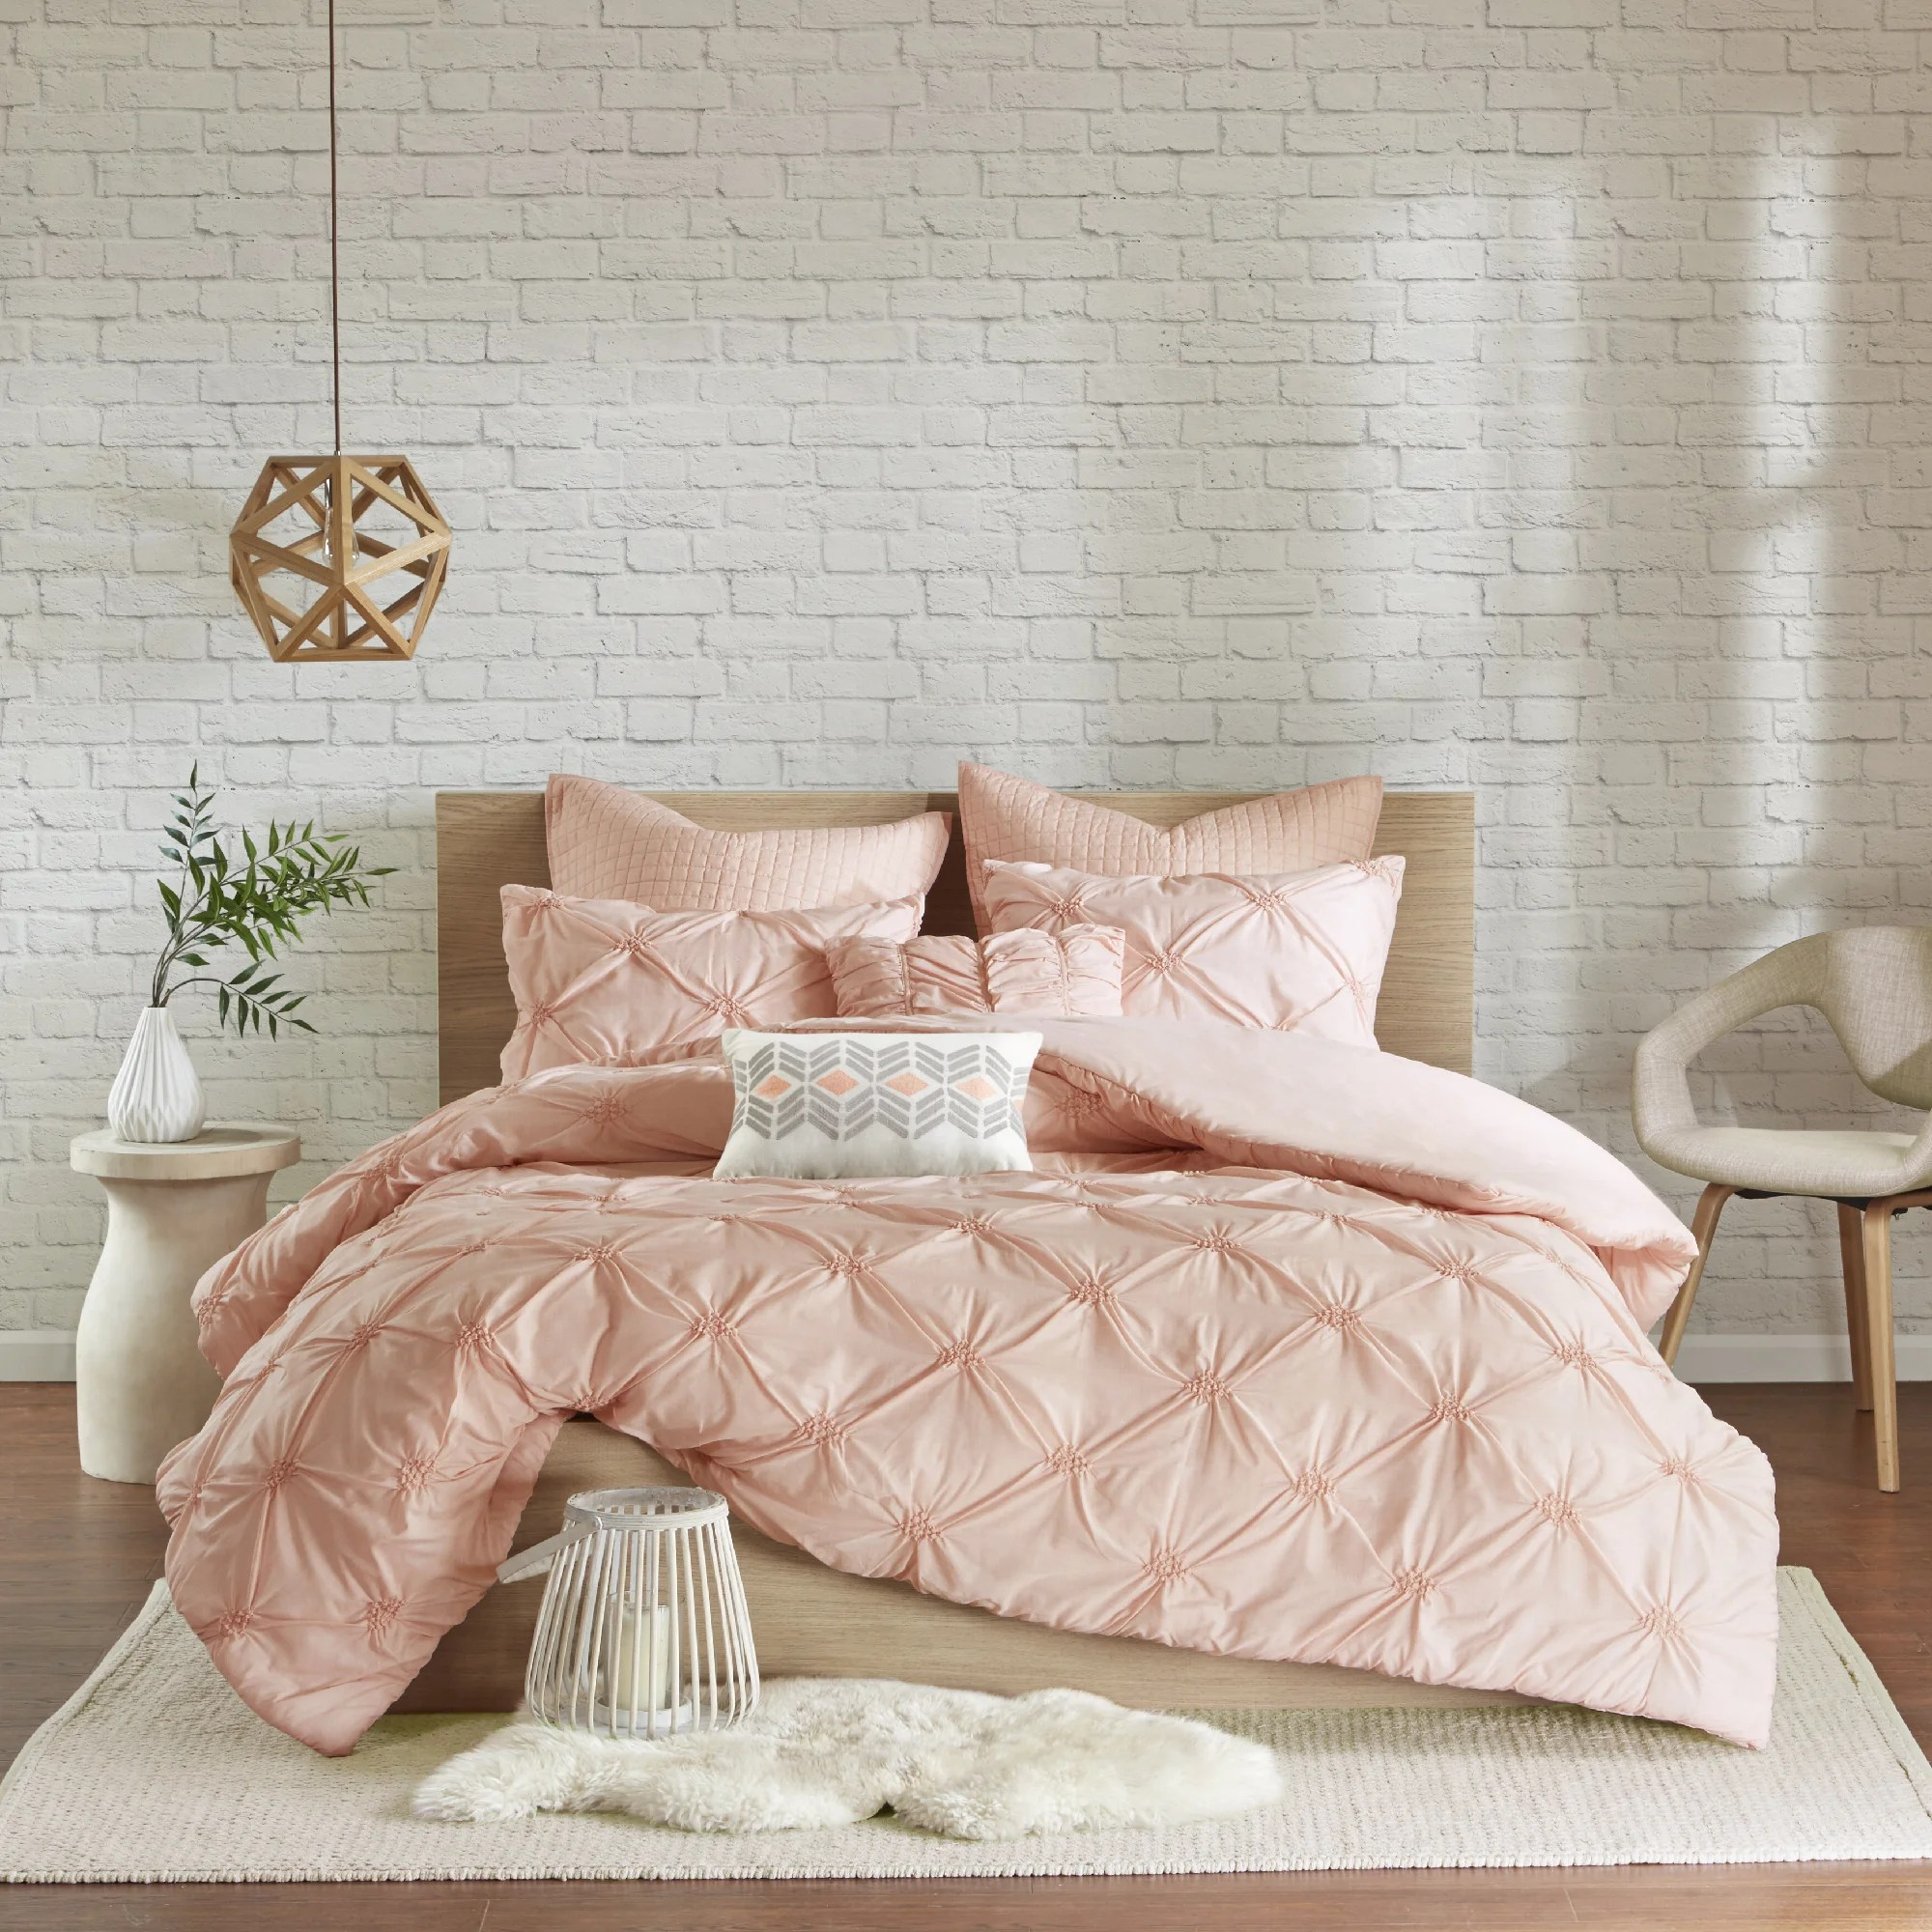 Pink Duvet Cover Urban Habitat Callie Pink Embroidered 7 Piece Duvet Cover Set With Pintuck Detailing